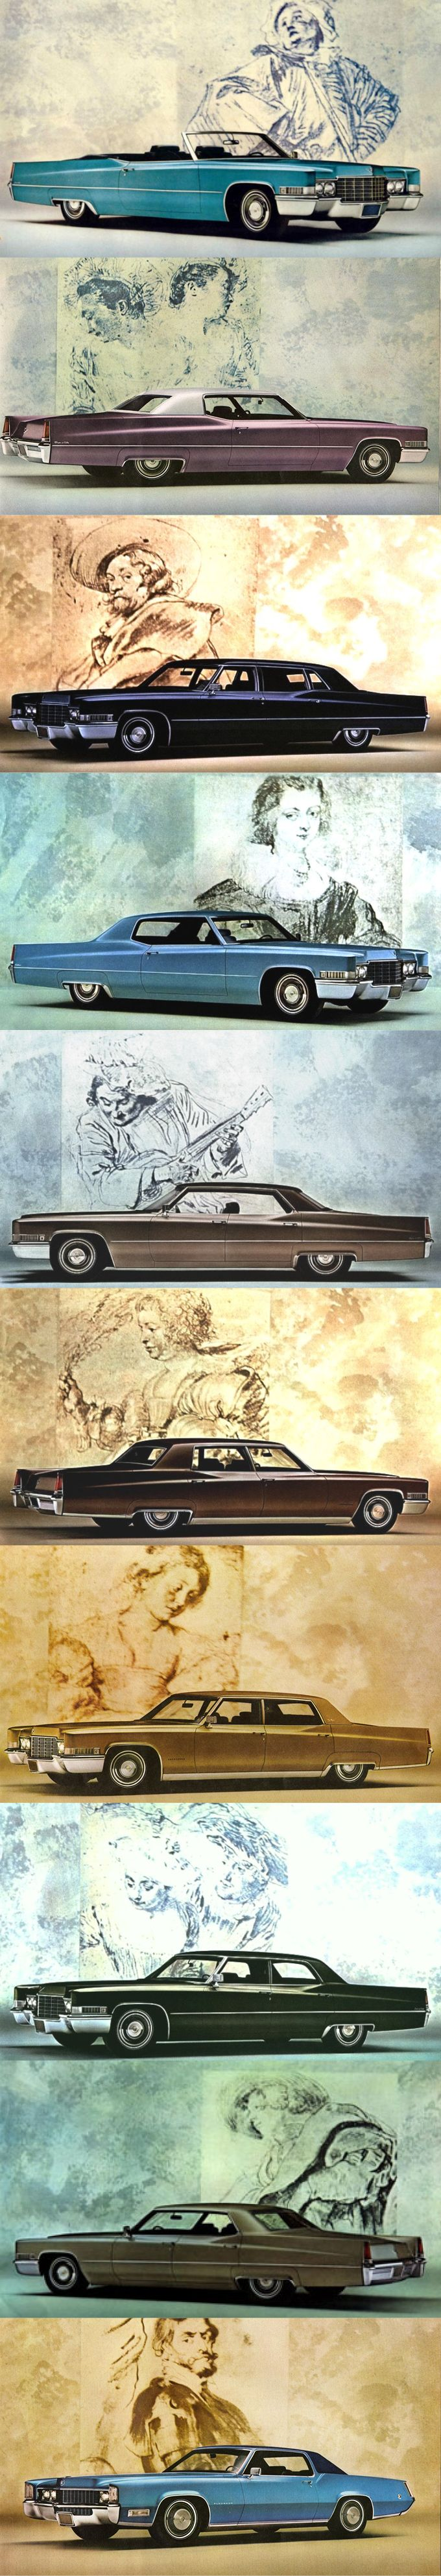 Cadillac Elmiraj Price In Usa >> 25+ best ideas about Cadillac on Pinterest | Cadillac cts, Pink cadillac and 1959 cadillac